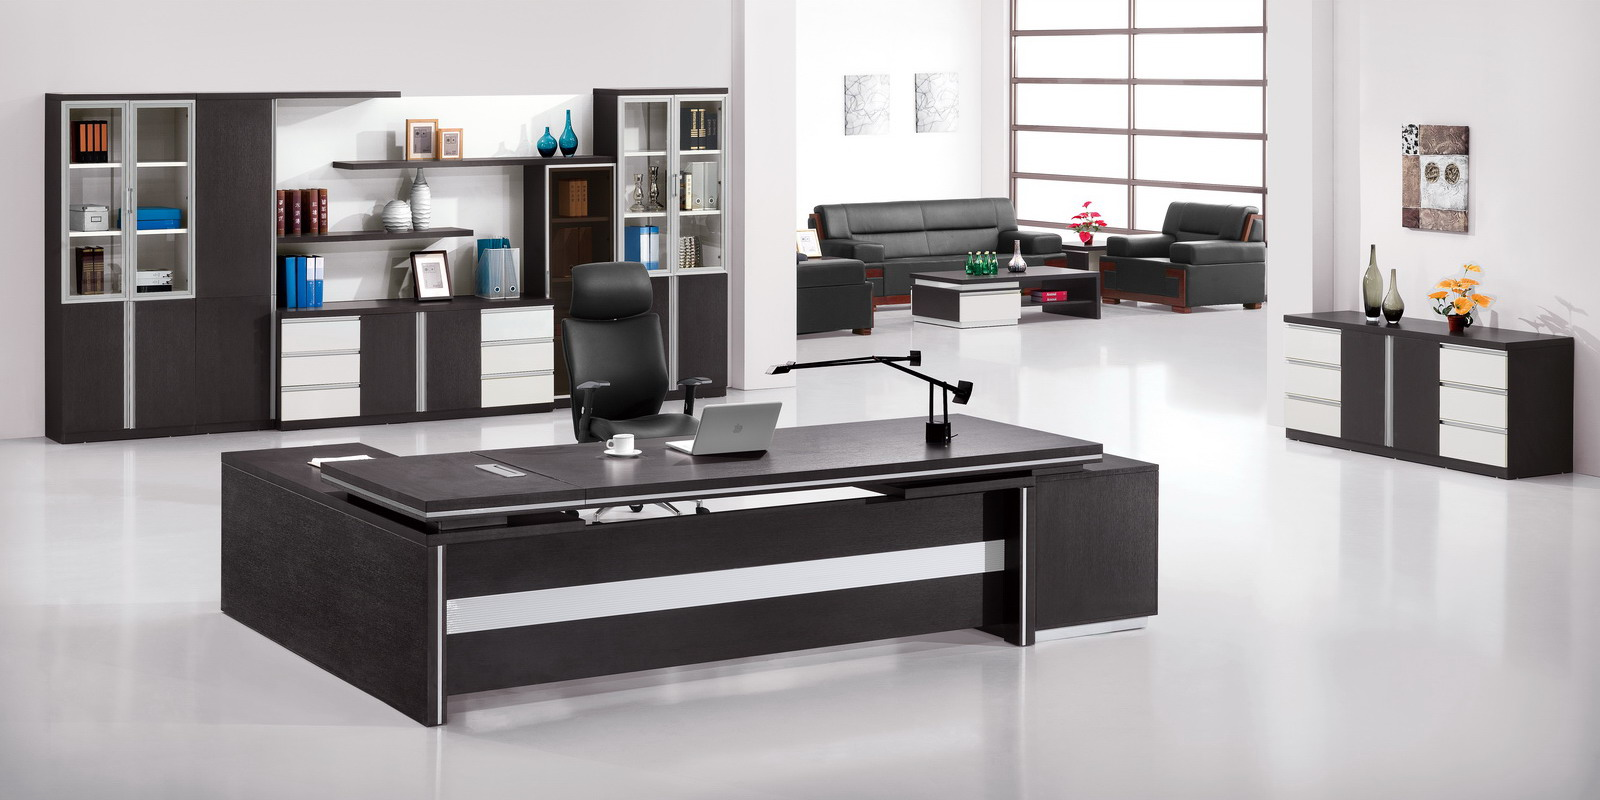 Stunning Office Furniture 1600 x 800 · 220 kB · jpeg